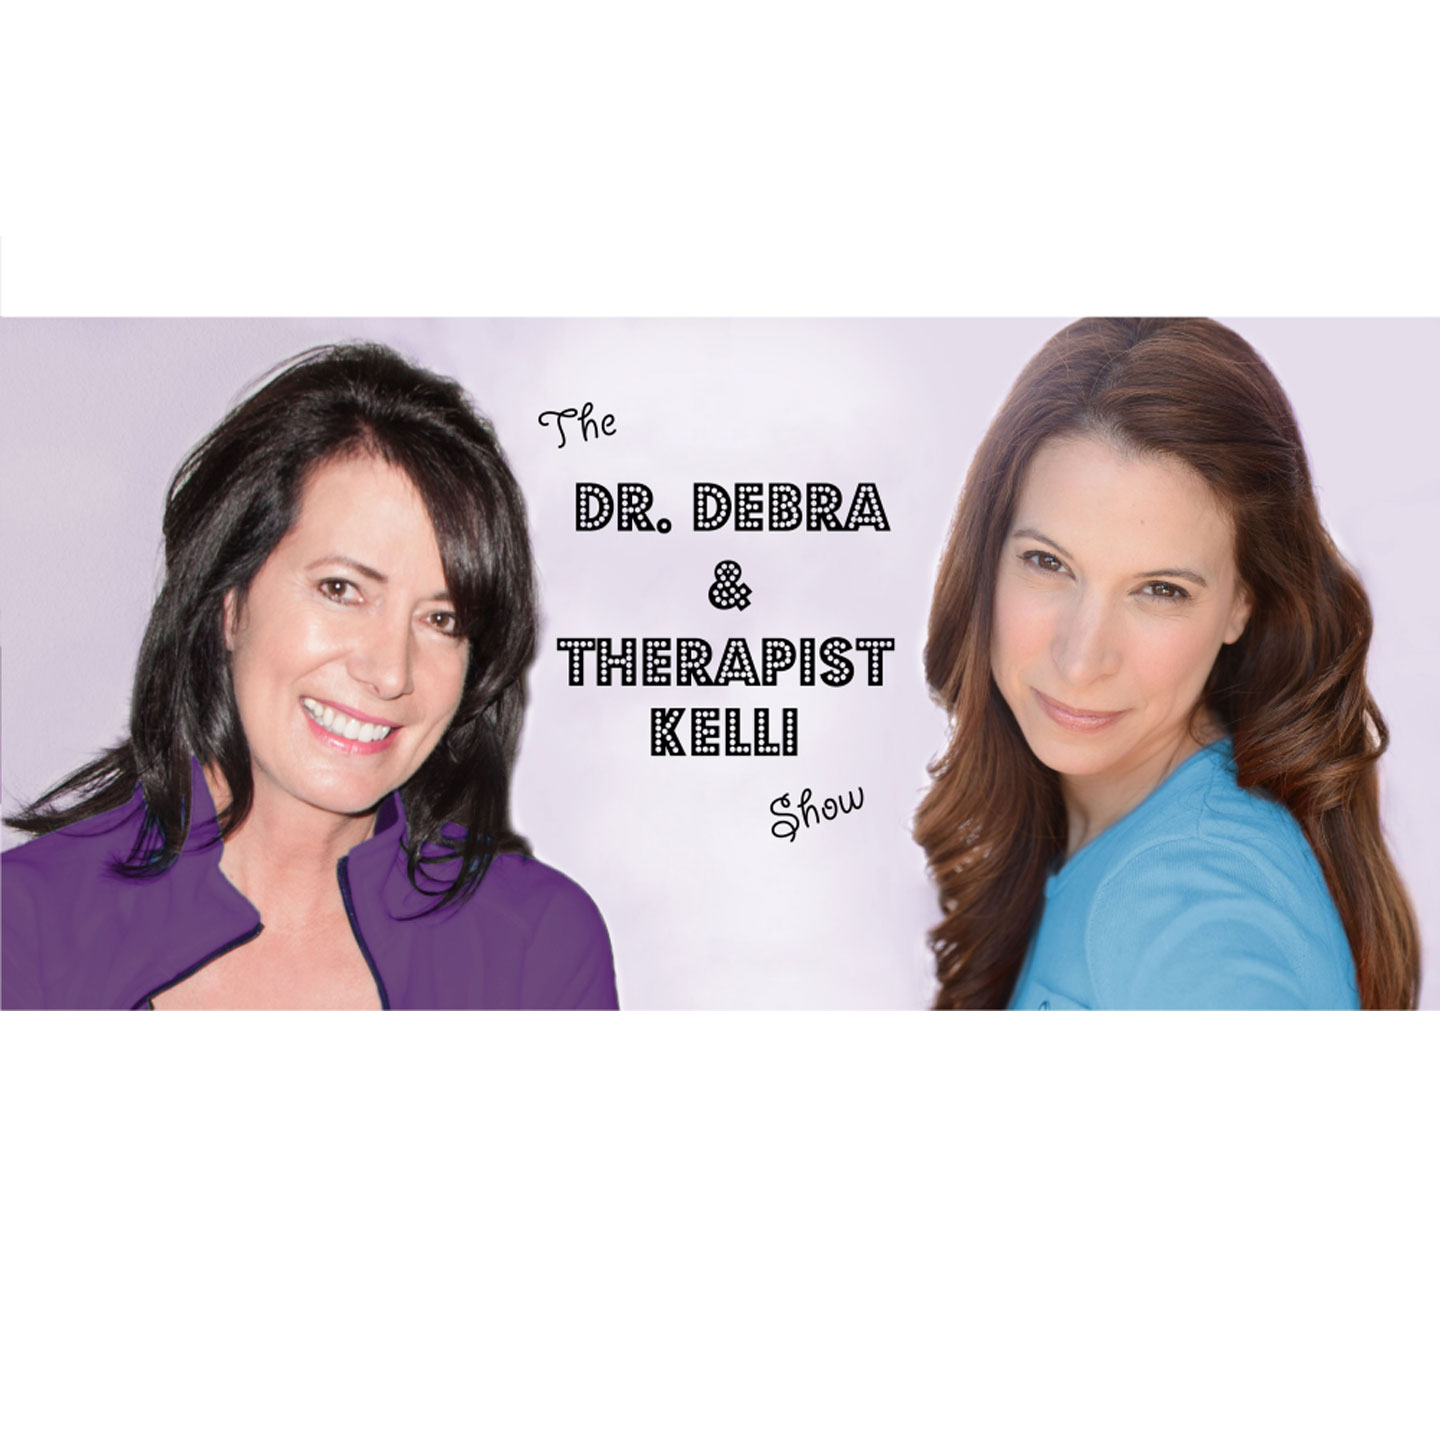 The Doctor Debra and Therapist Kelli Show